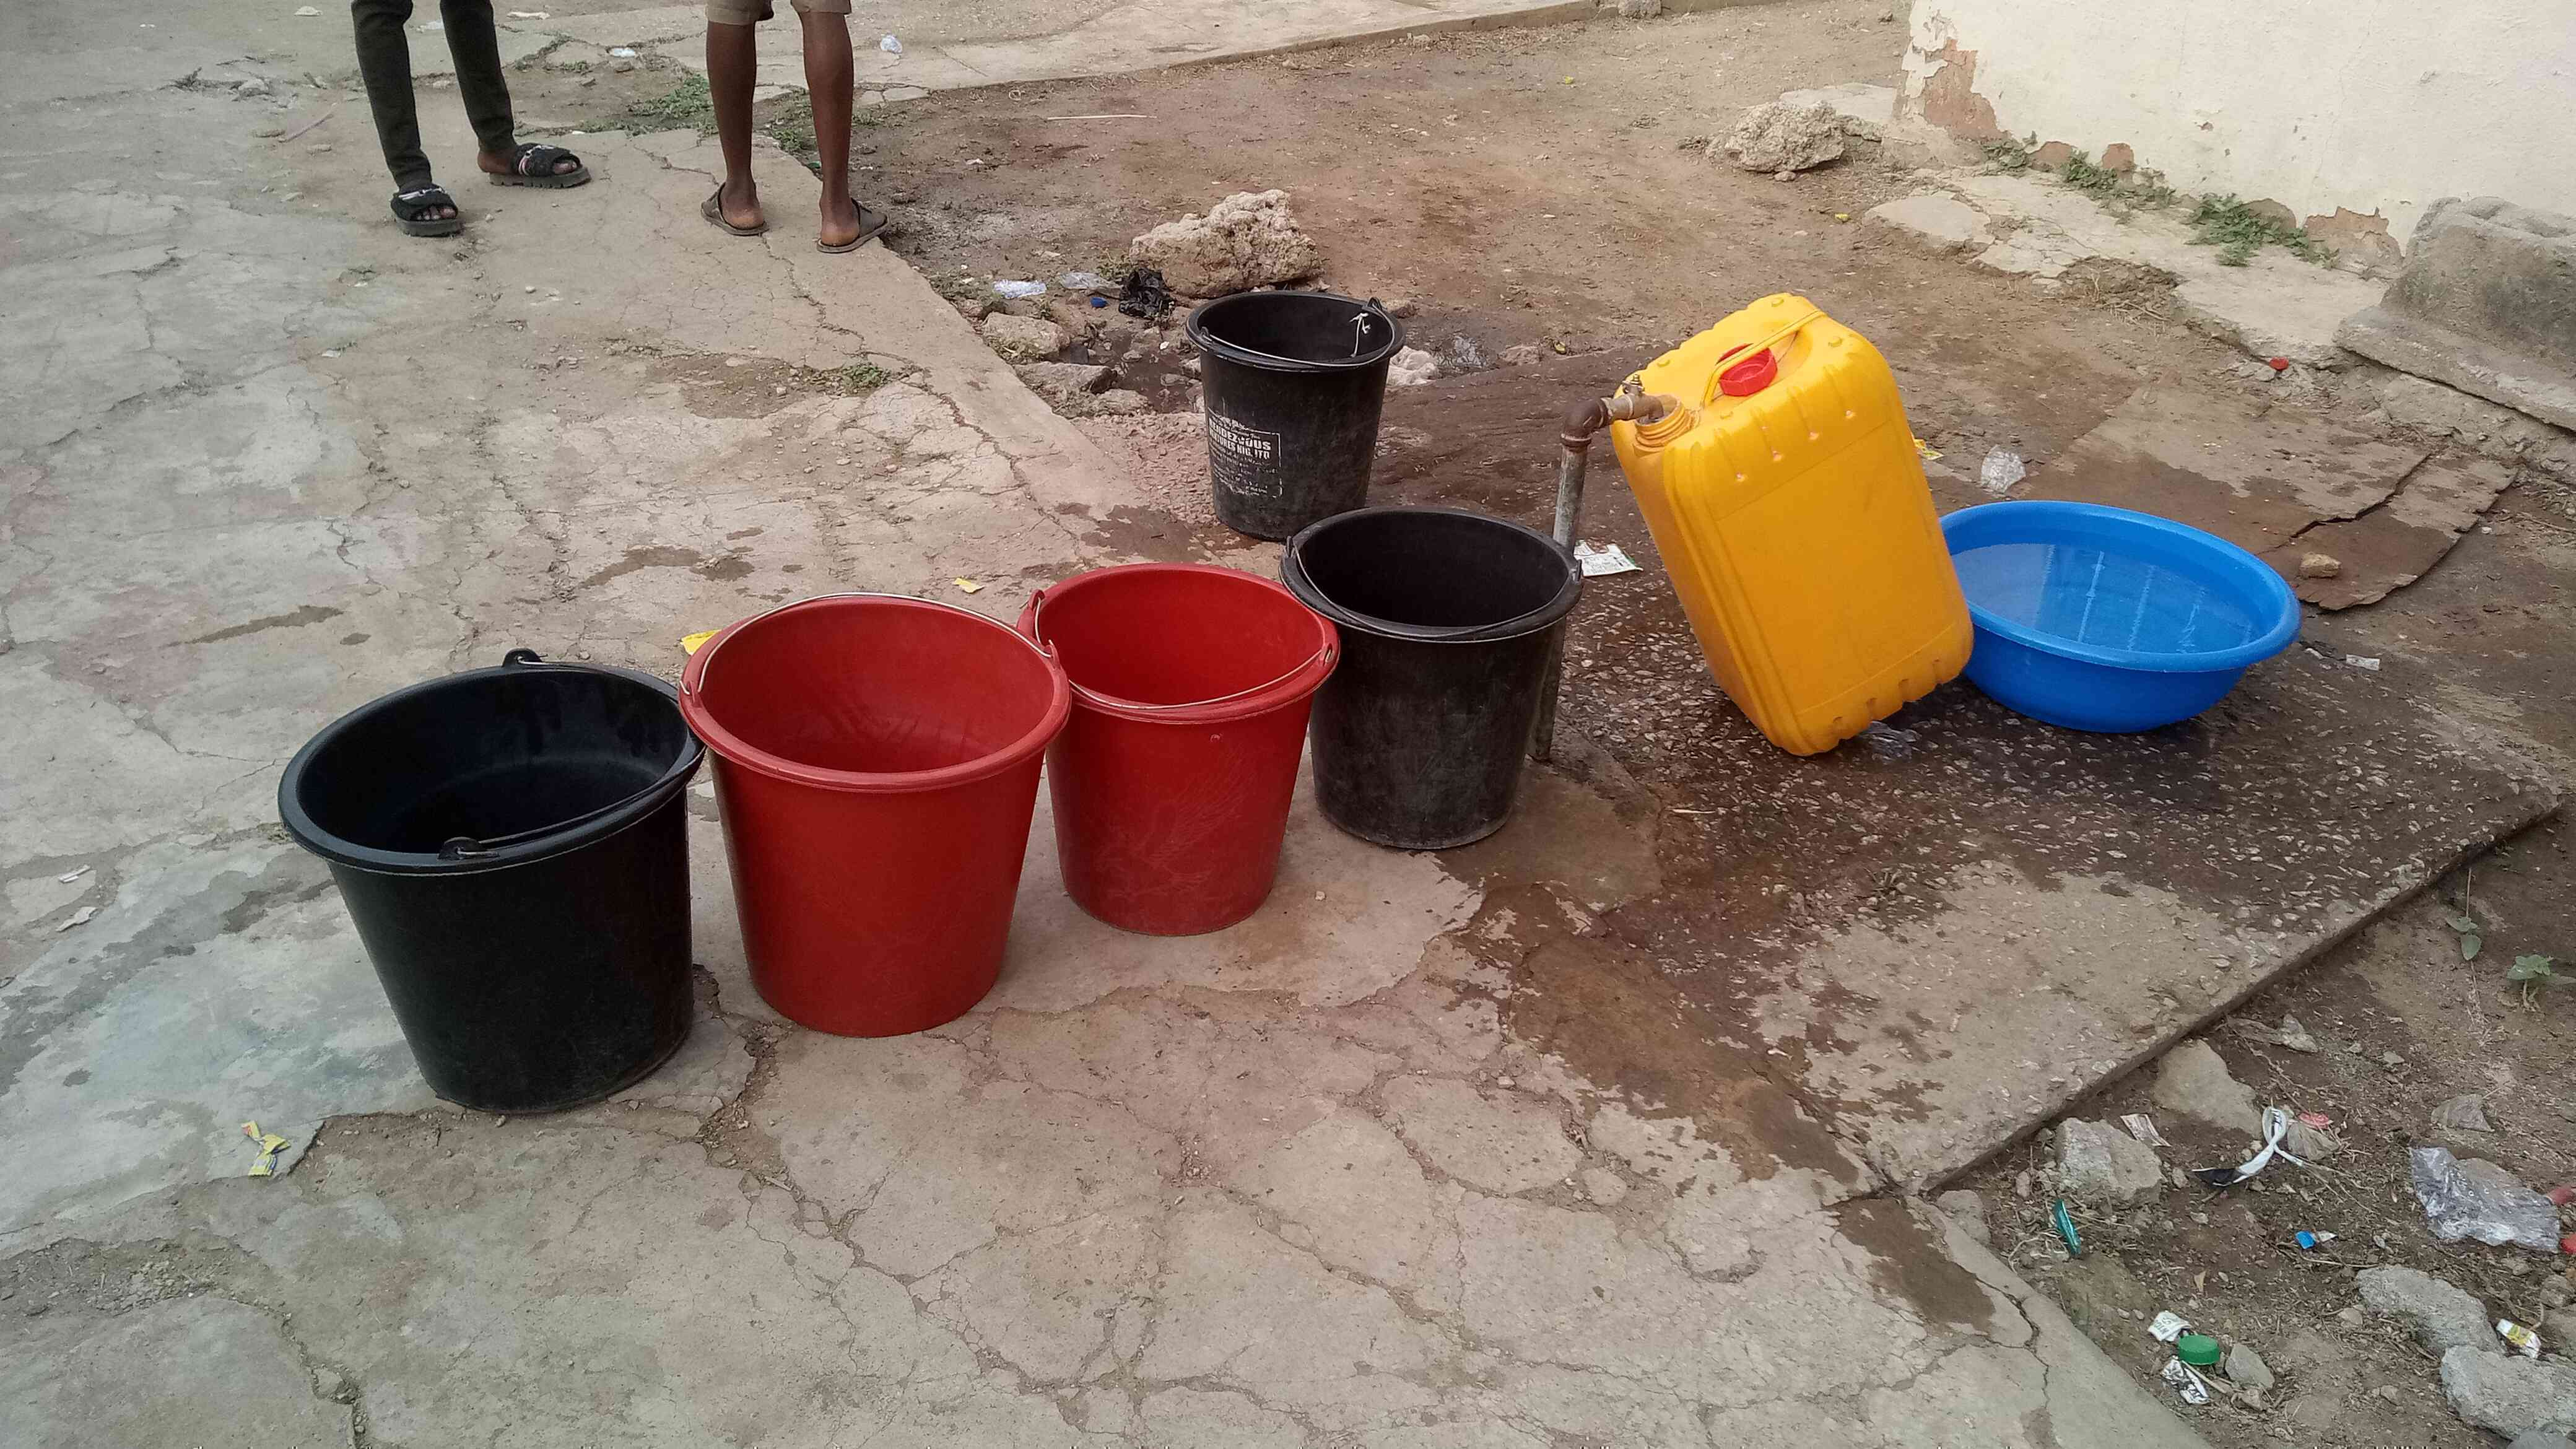 Water Scarcity in the Hostel